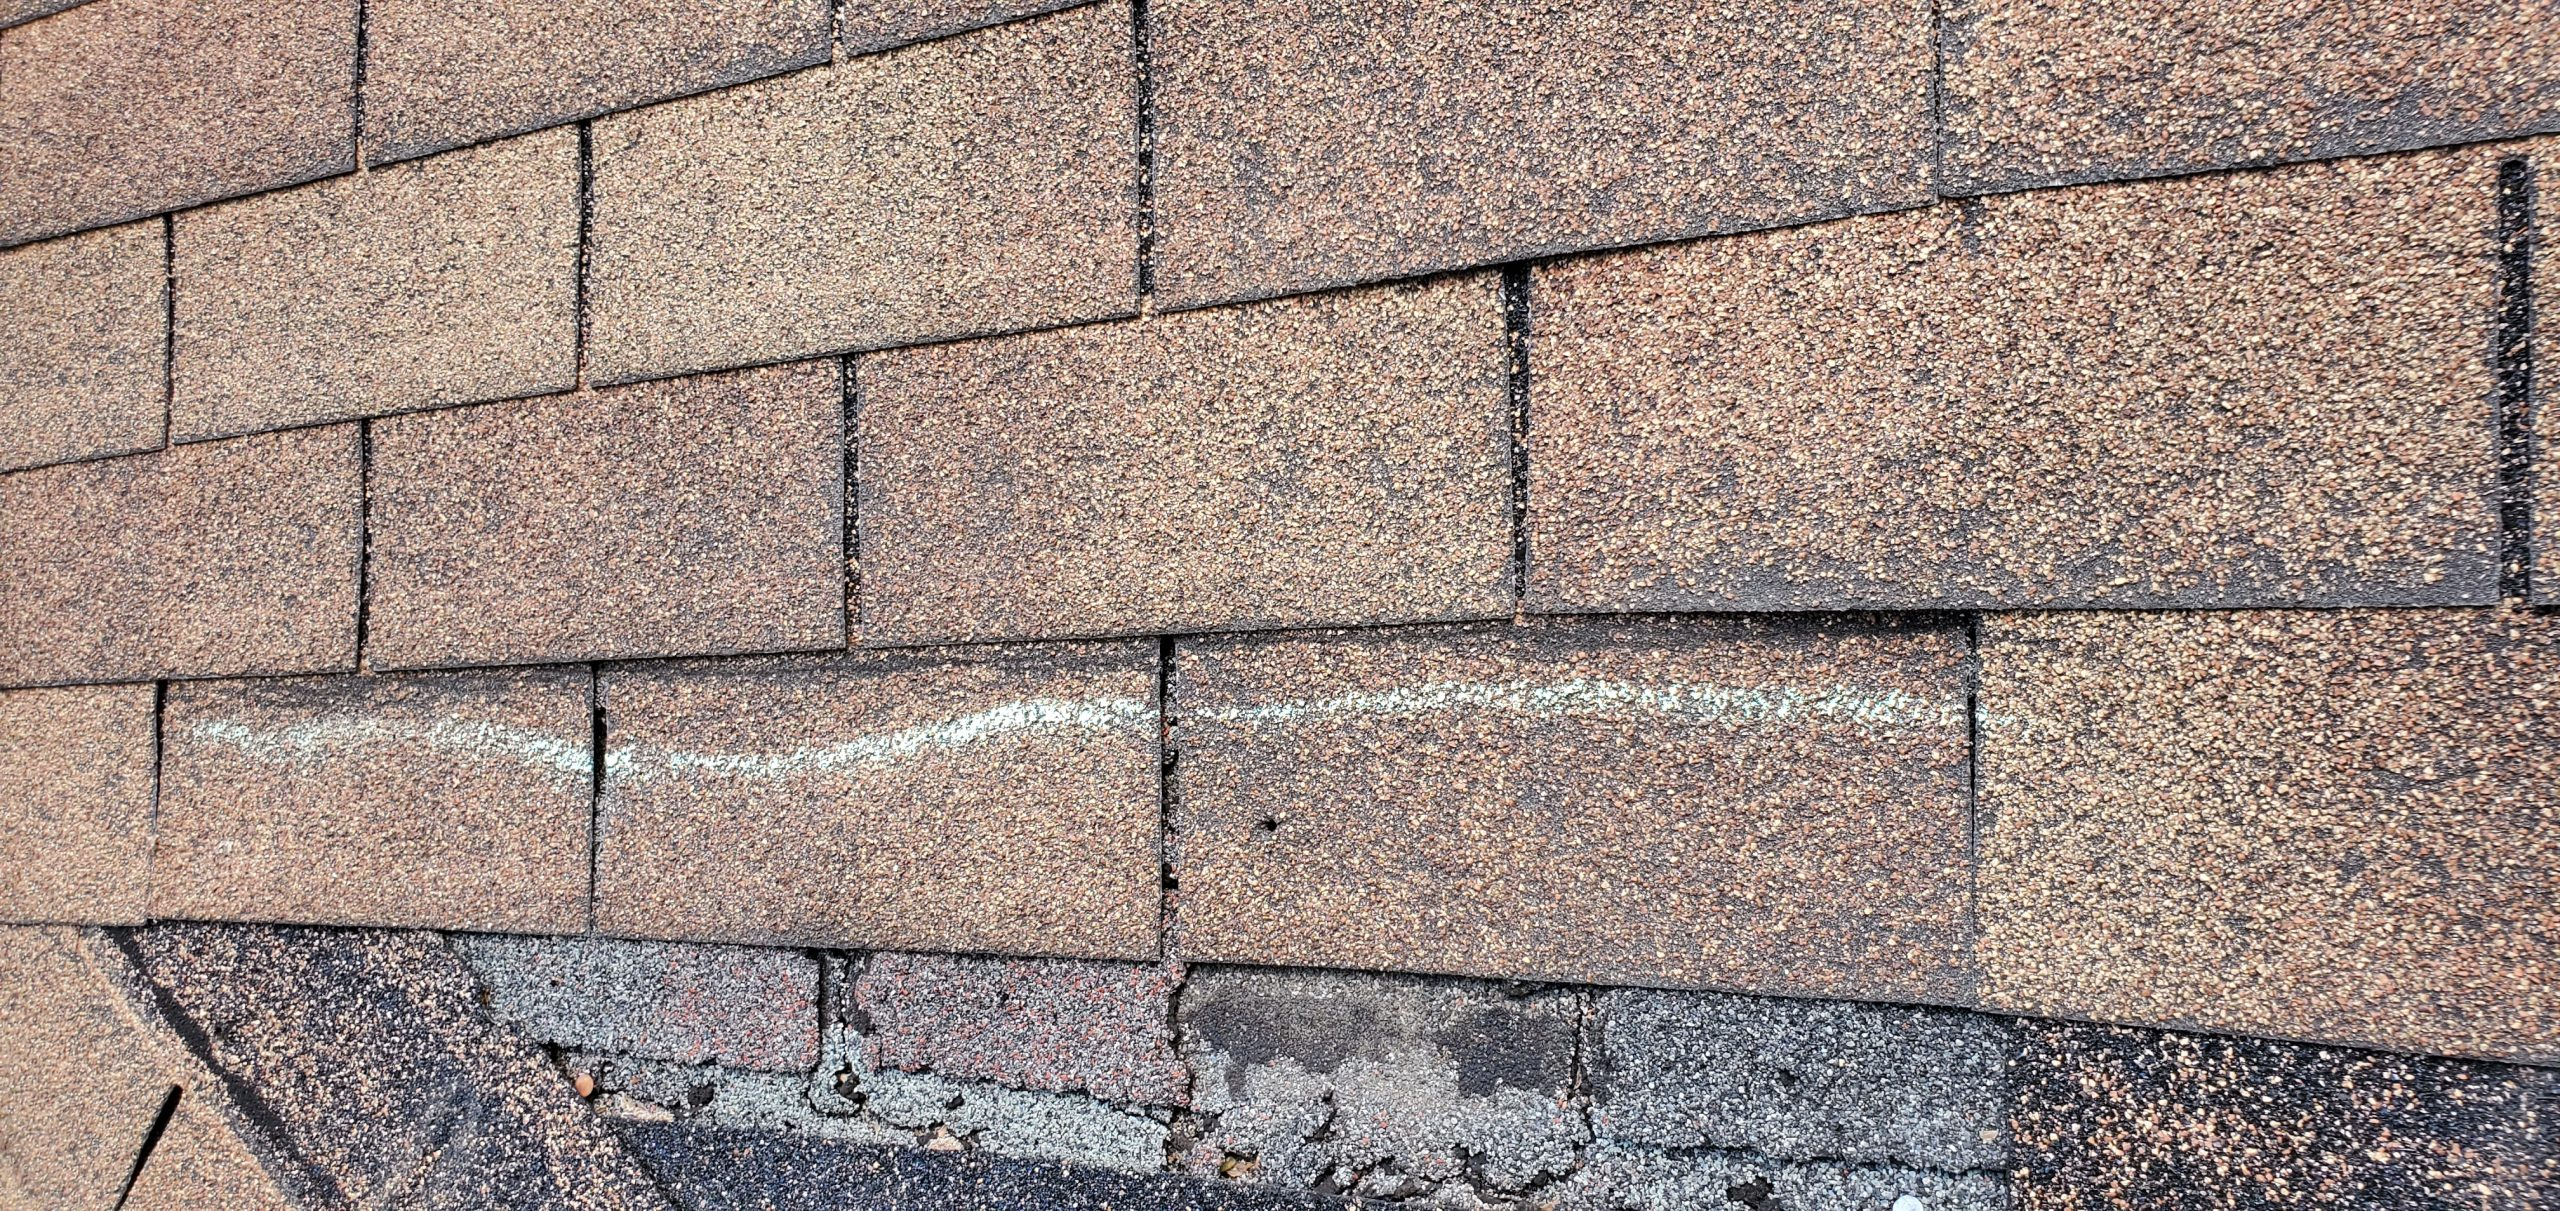 this is a picture of several shingles that are blow off of a roof